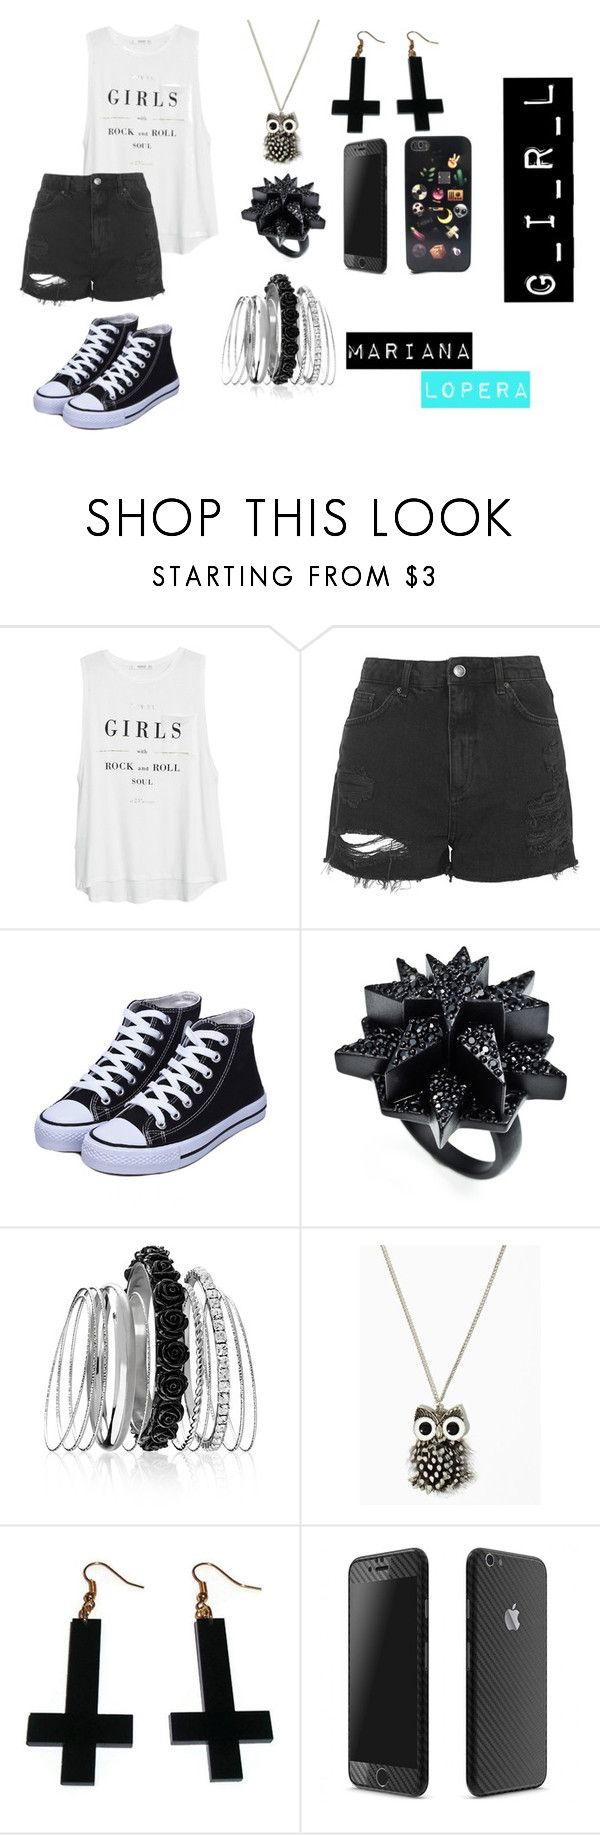 """G_I_R_L"" by mloperamarin on Polyvore featuring moda, MANGO, Topshop, Eddie Borgo, Avenue y Chicnova Fashion"